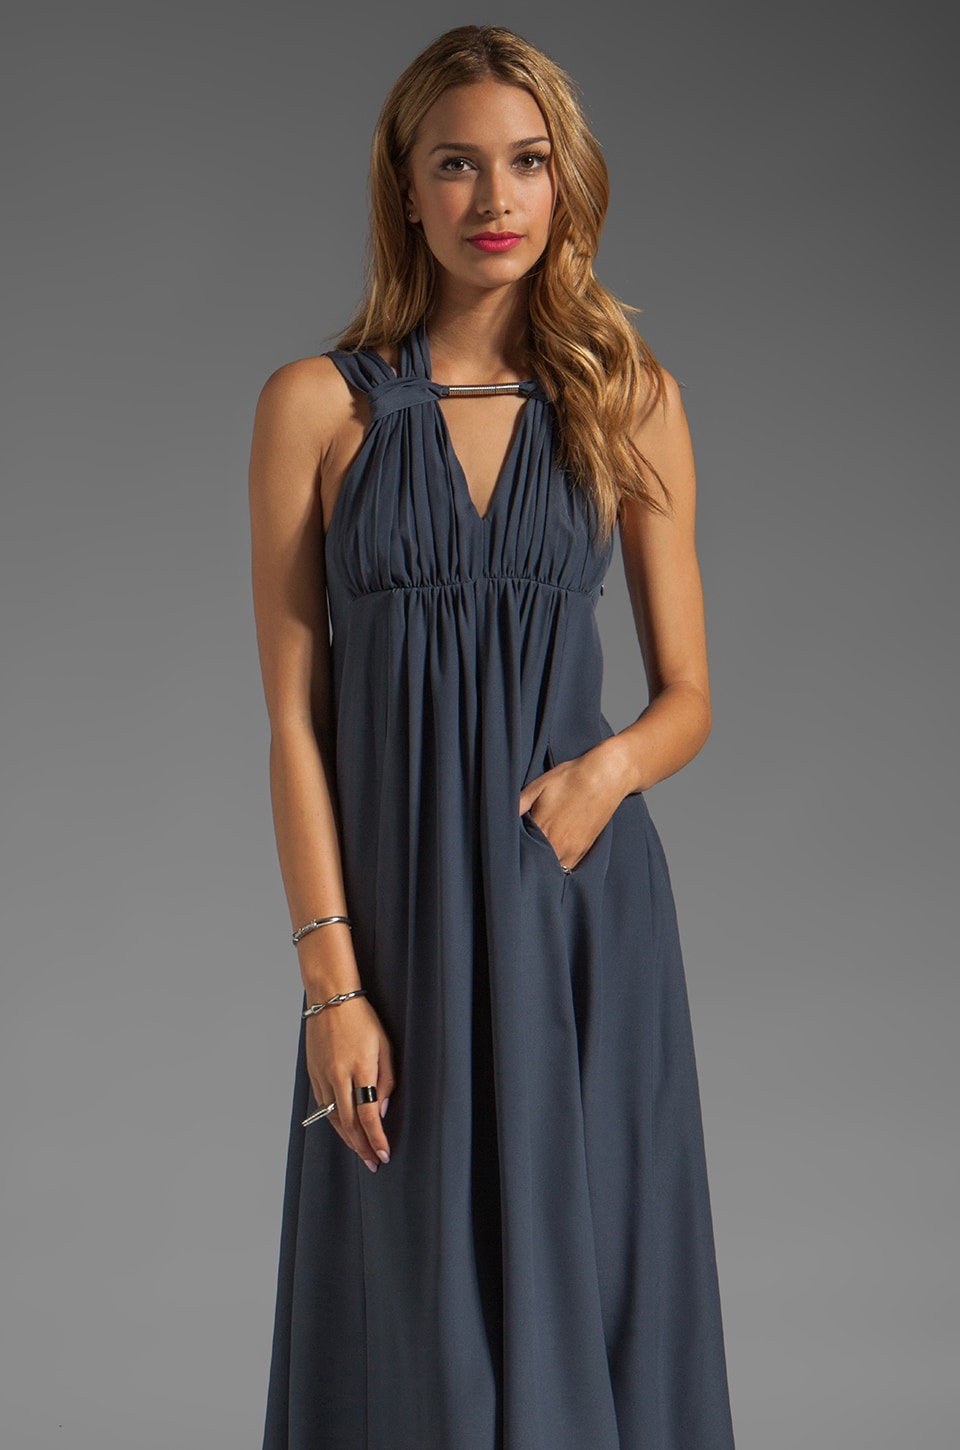 Susana Monaco Halter Tank Dress in Charcoal